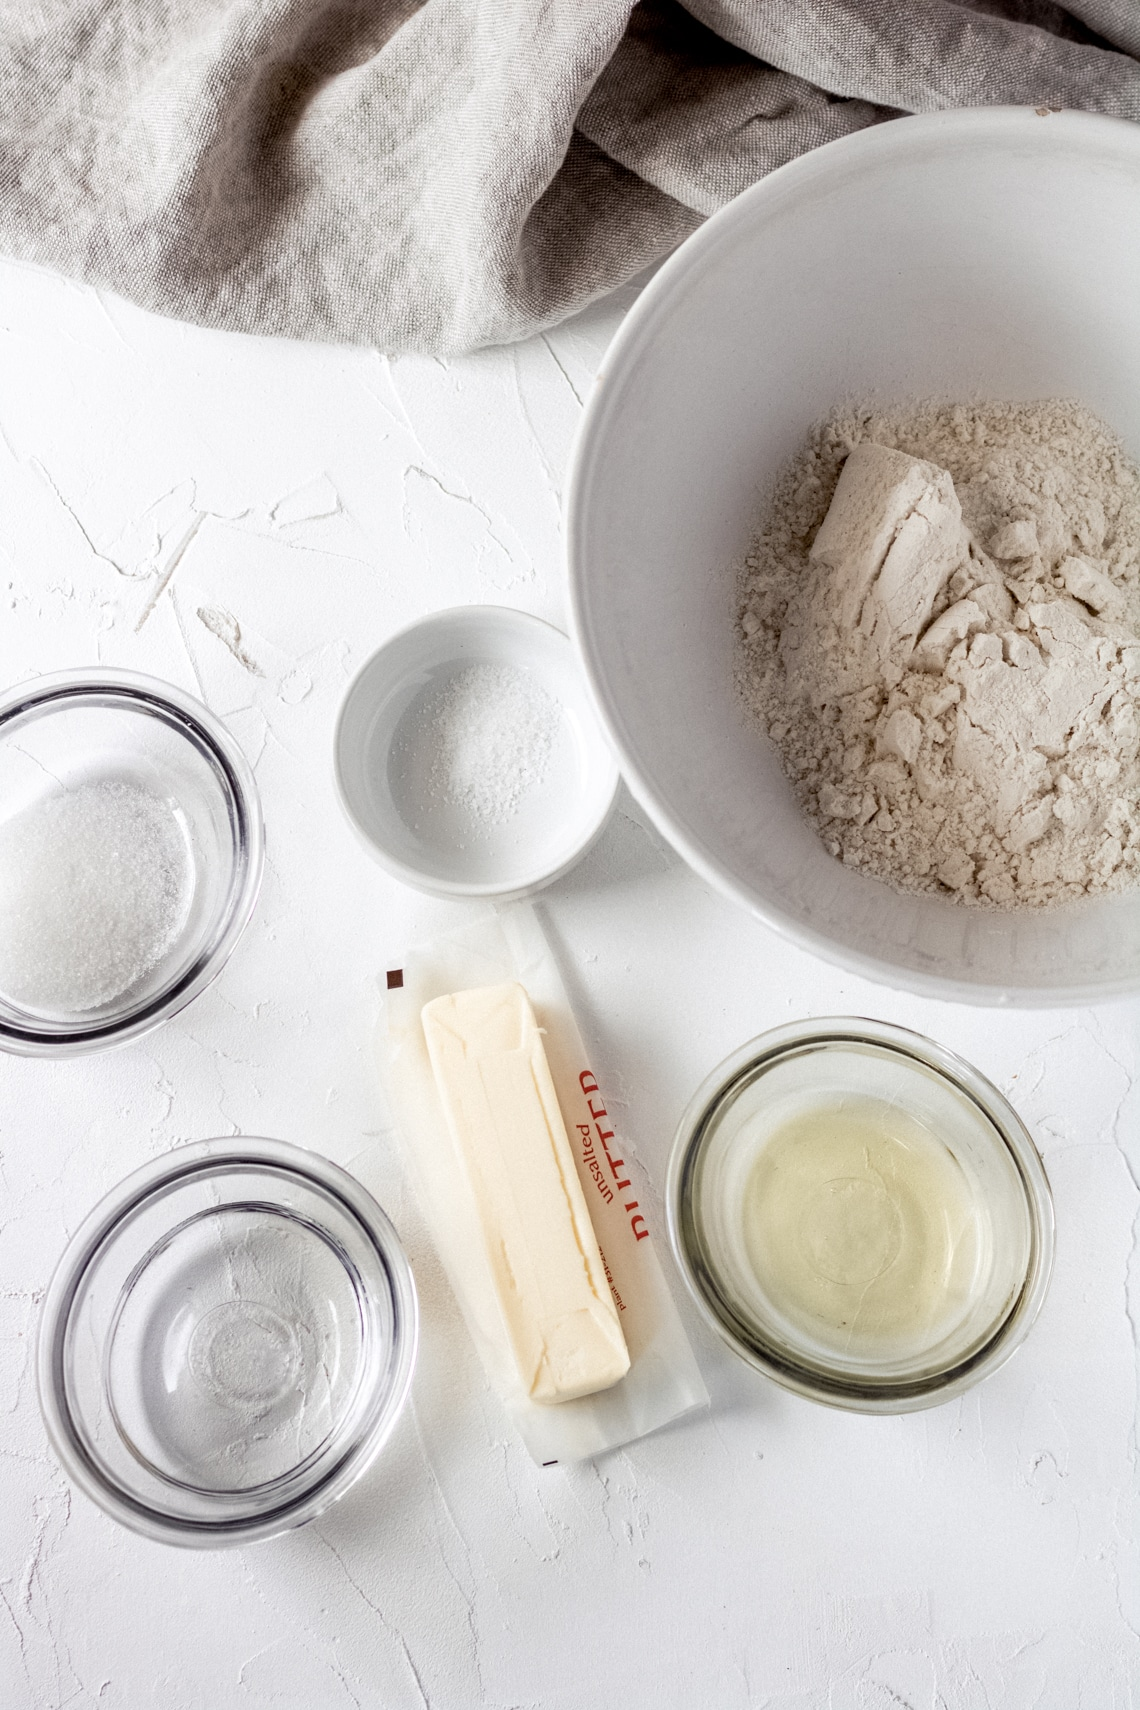 an overhead shot of the ingredients needed for gluten-free galette dough